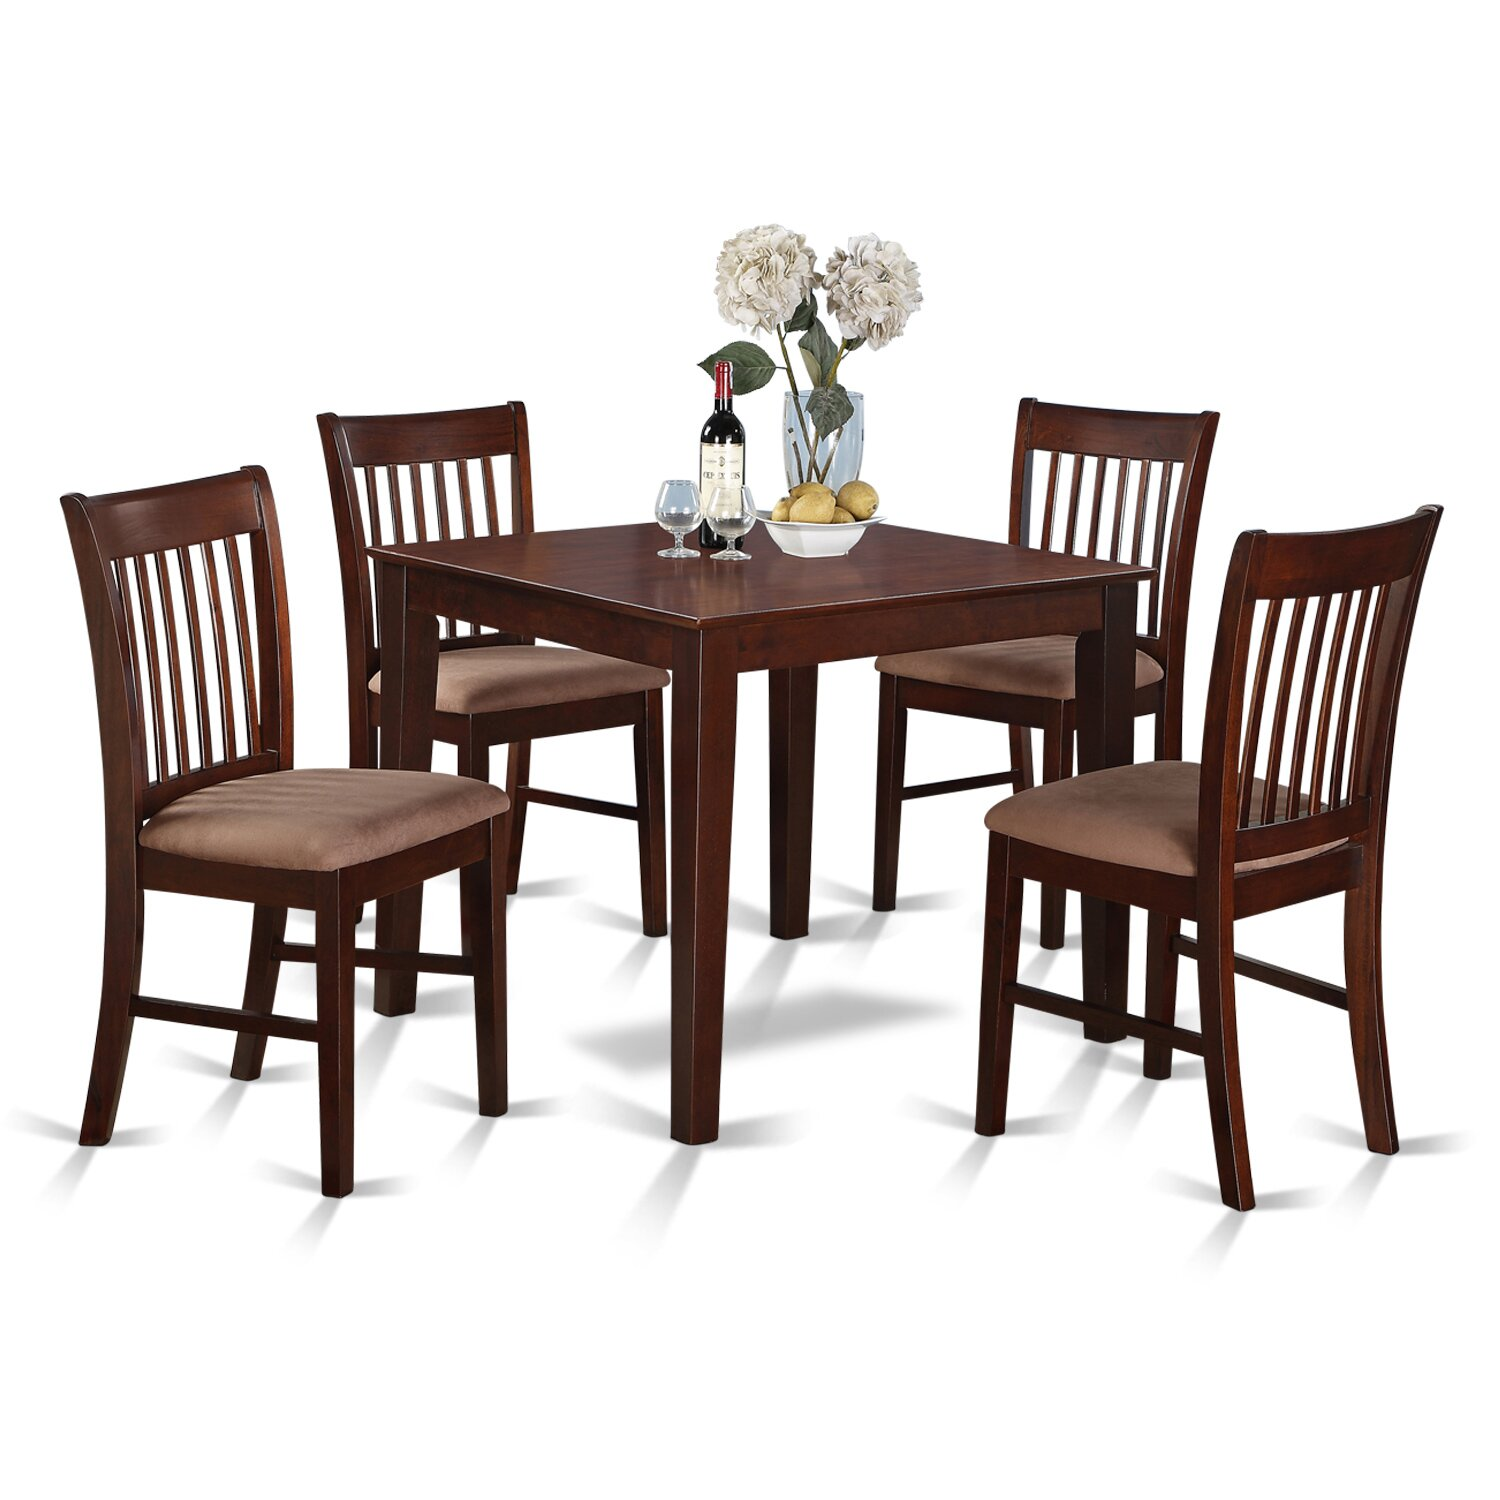 Square Kitchen Table And Chairs: East West Oxford 5 Piece Dining Set & Reviews